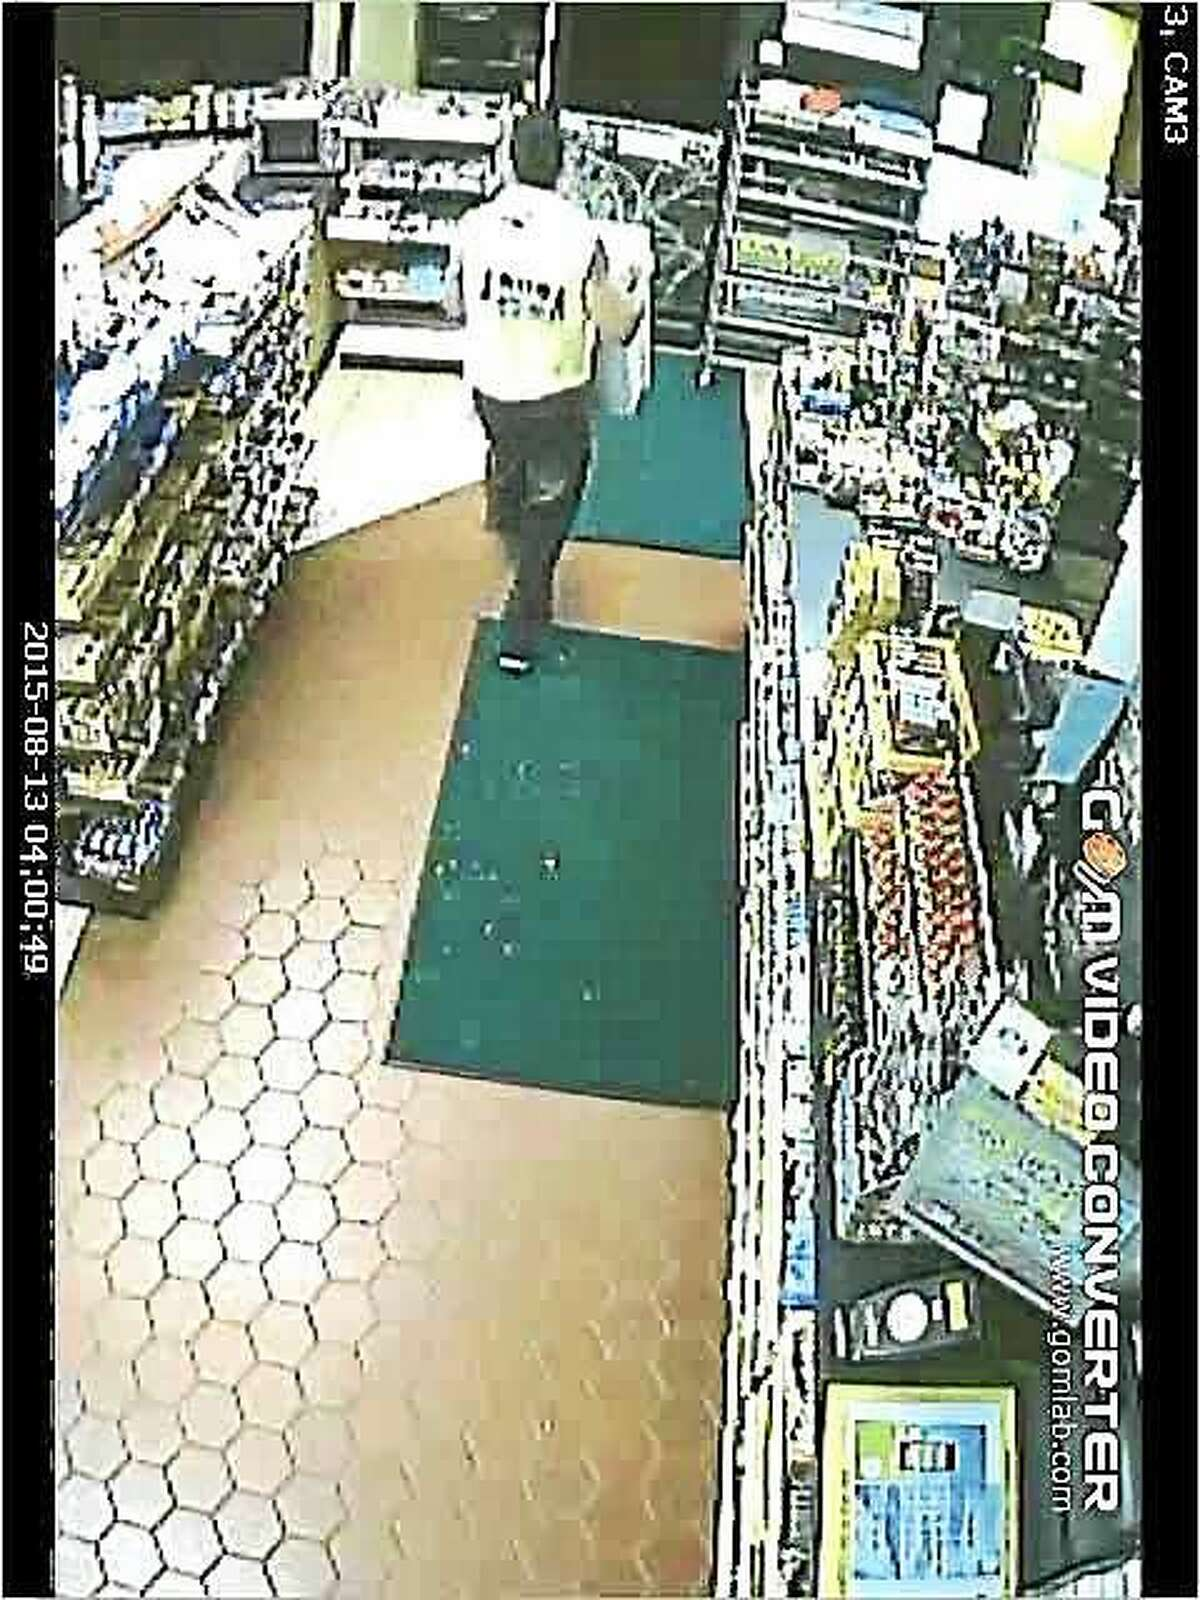 Police are asking for the public's help to identify this man, who they say burglarized a Middletown gas station Thursday.